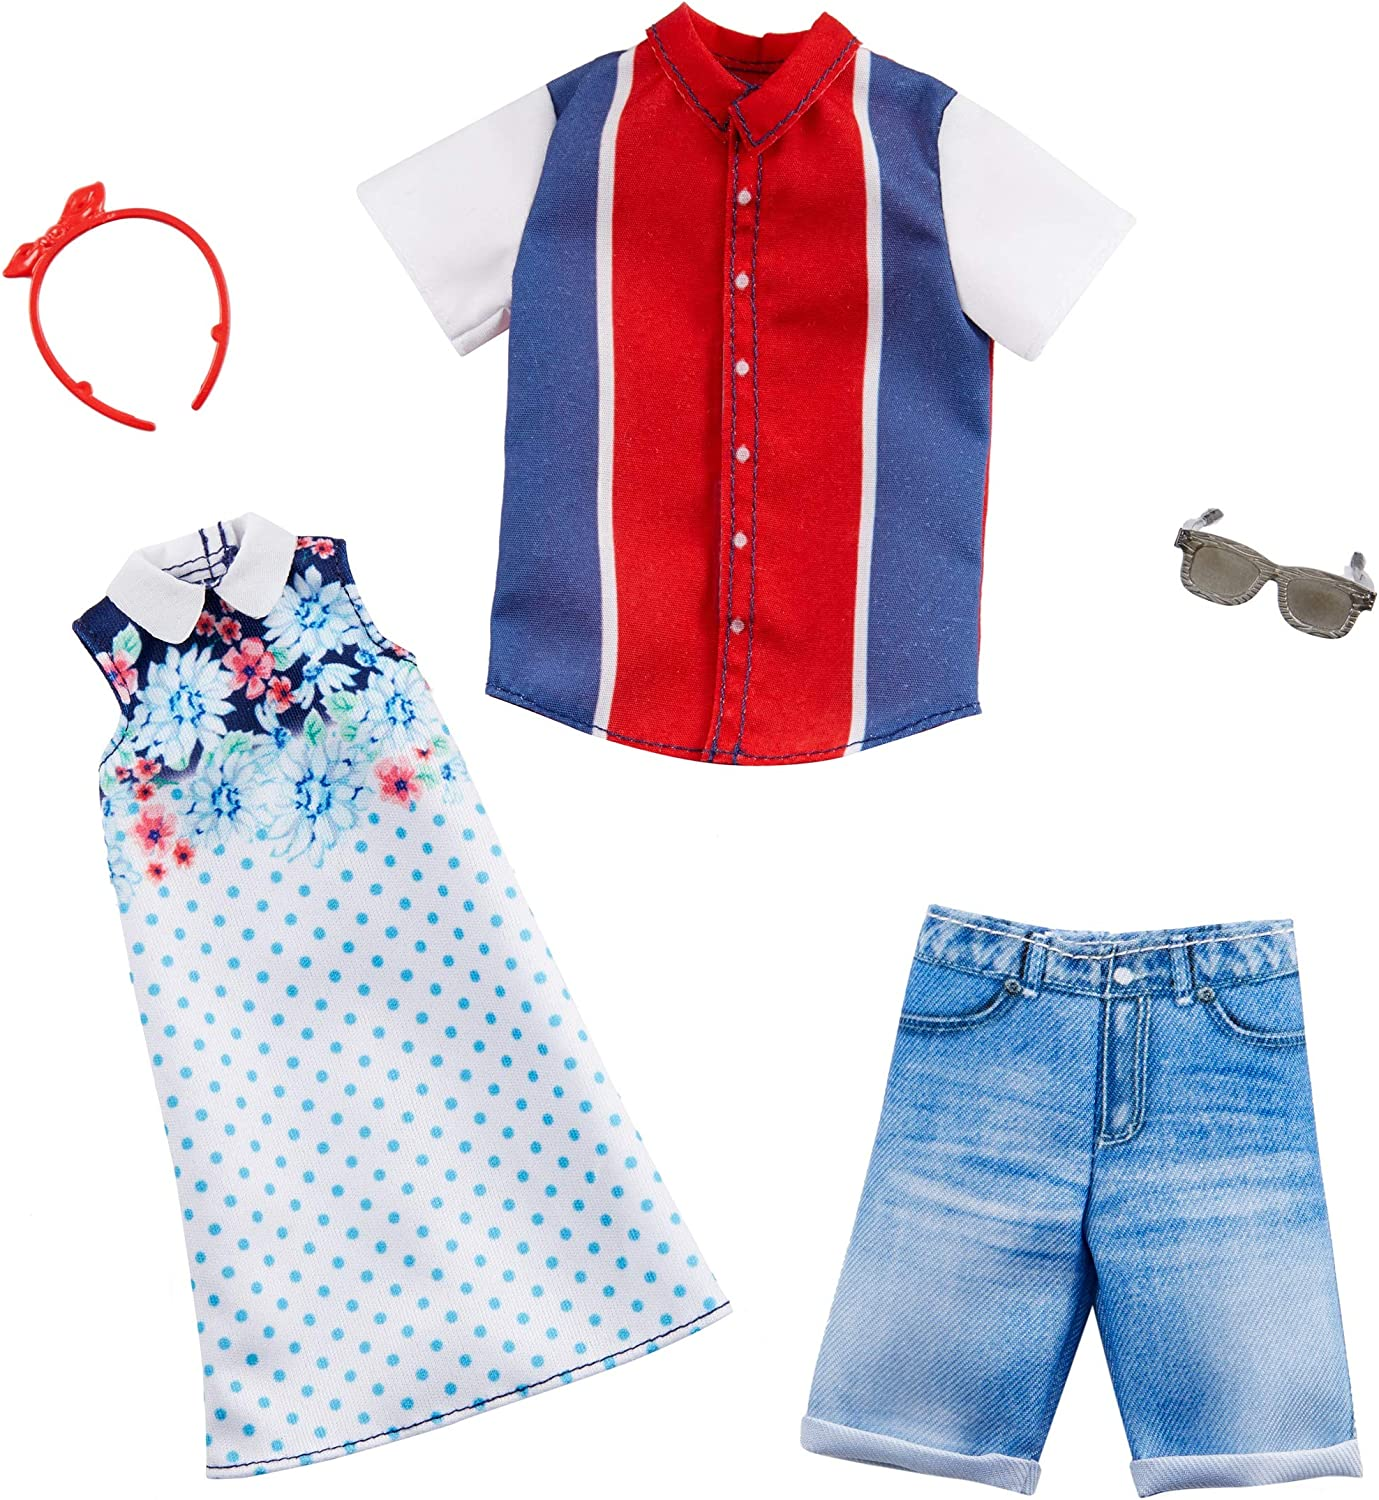 Barbie Clothes Complete Outfit Ken Red White Blue Striped Shirt Denim Shorts